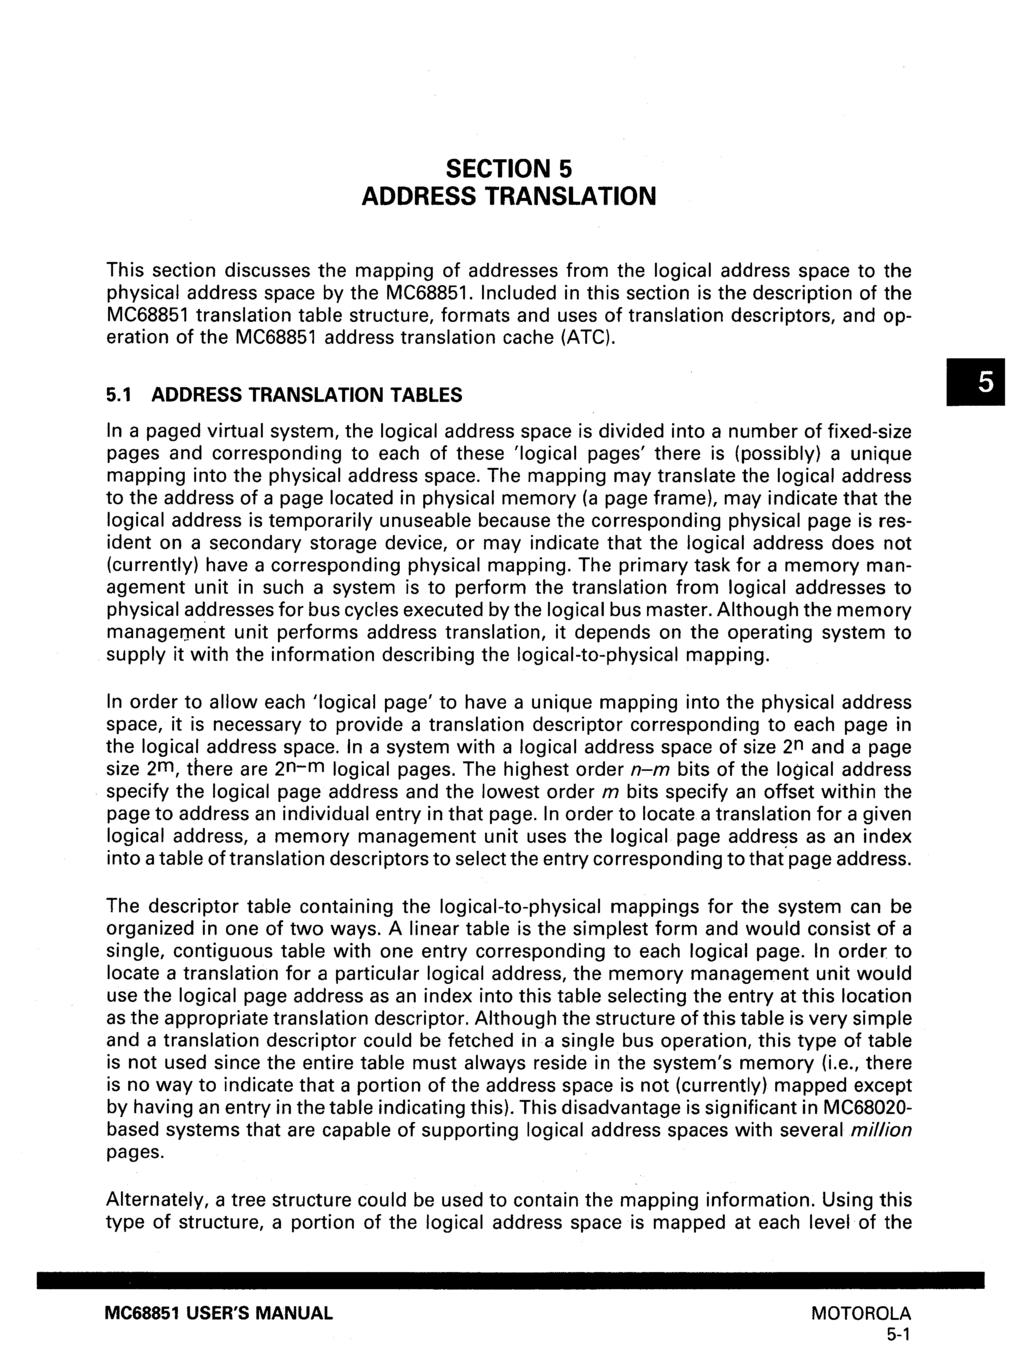 SECTION 5 ADDRESS TRANSLATION This section discusses the mapping of addresses from the logical address space to the physical address space by the MC68851.